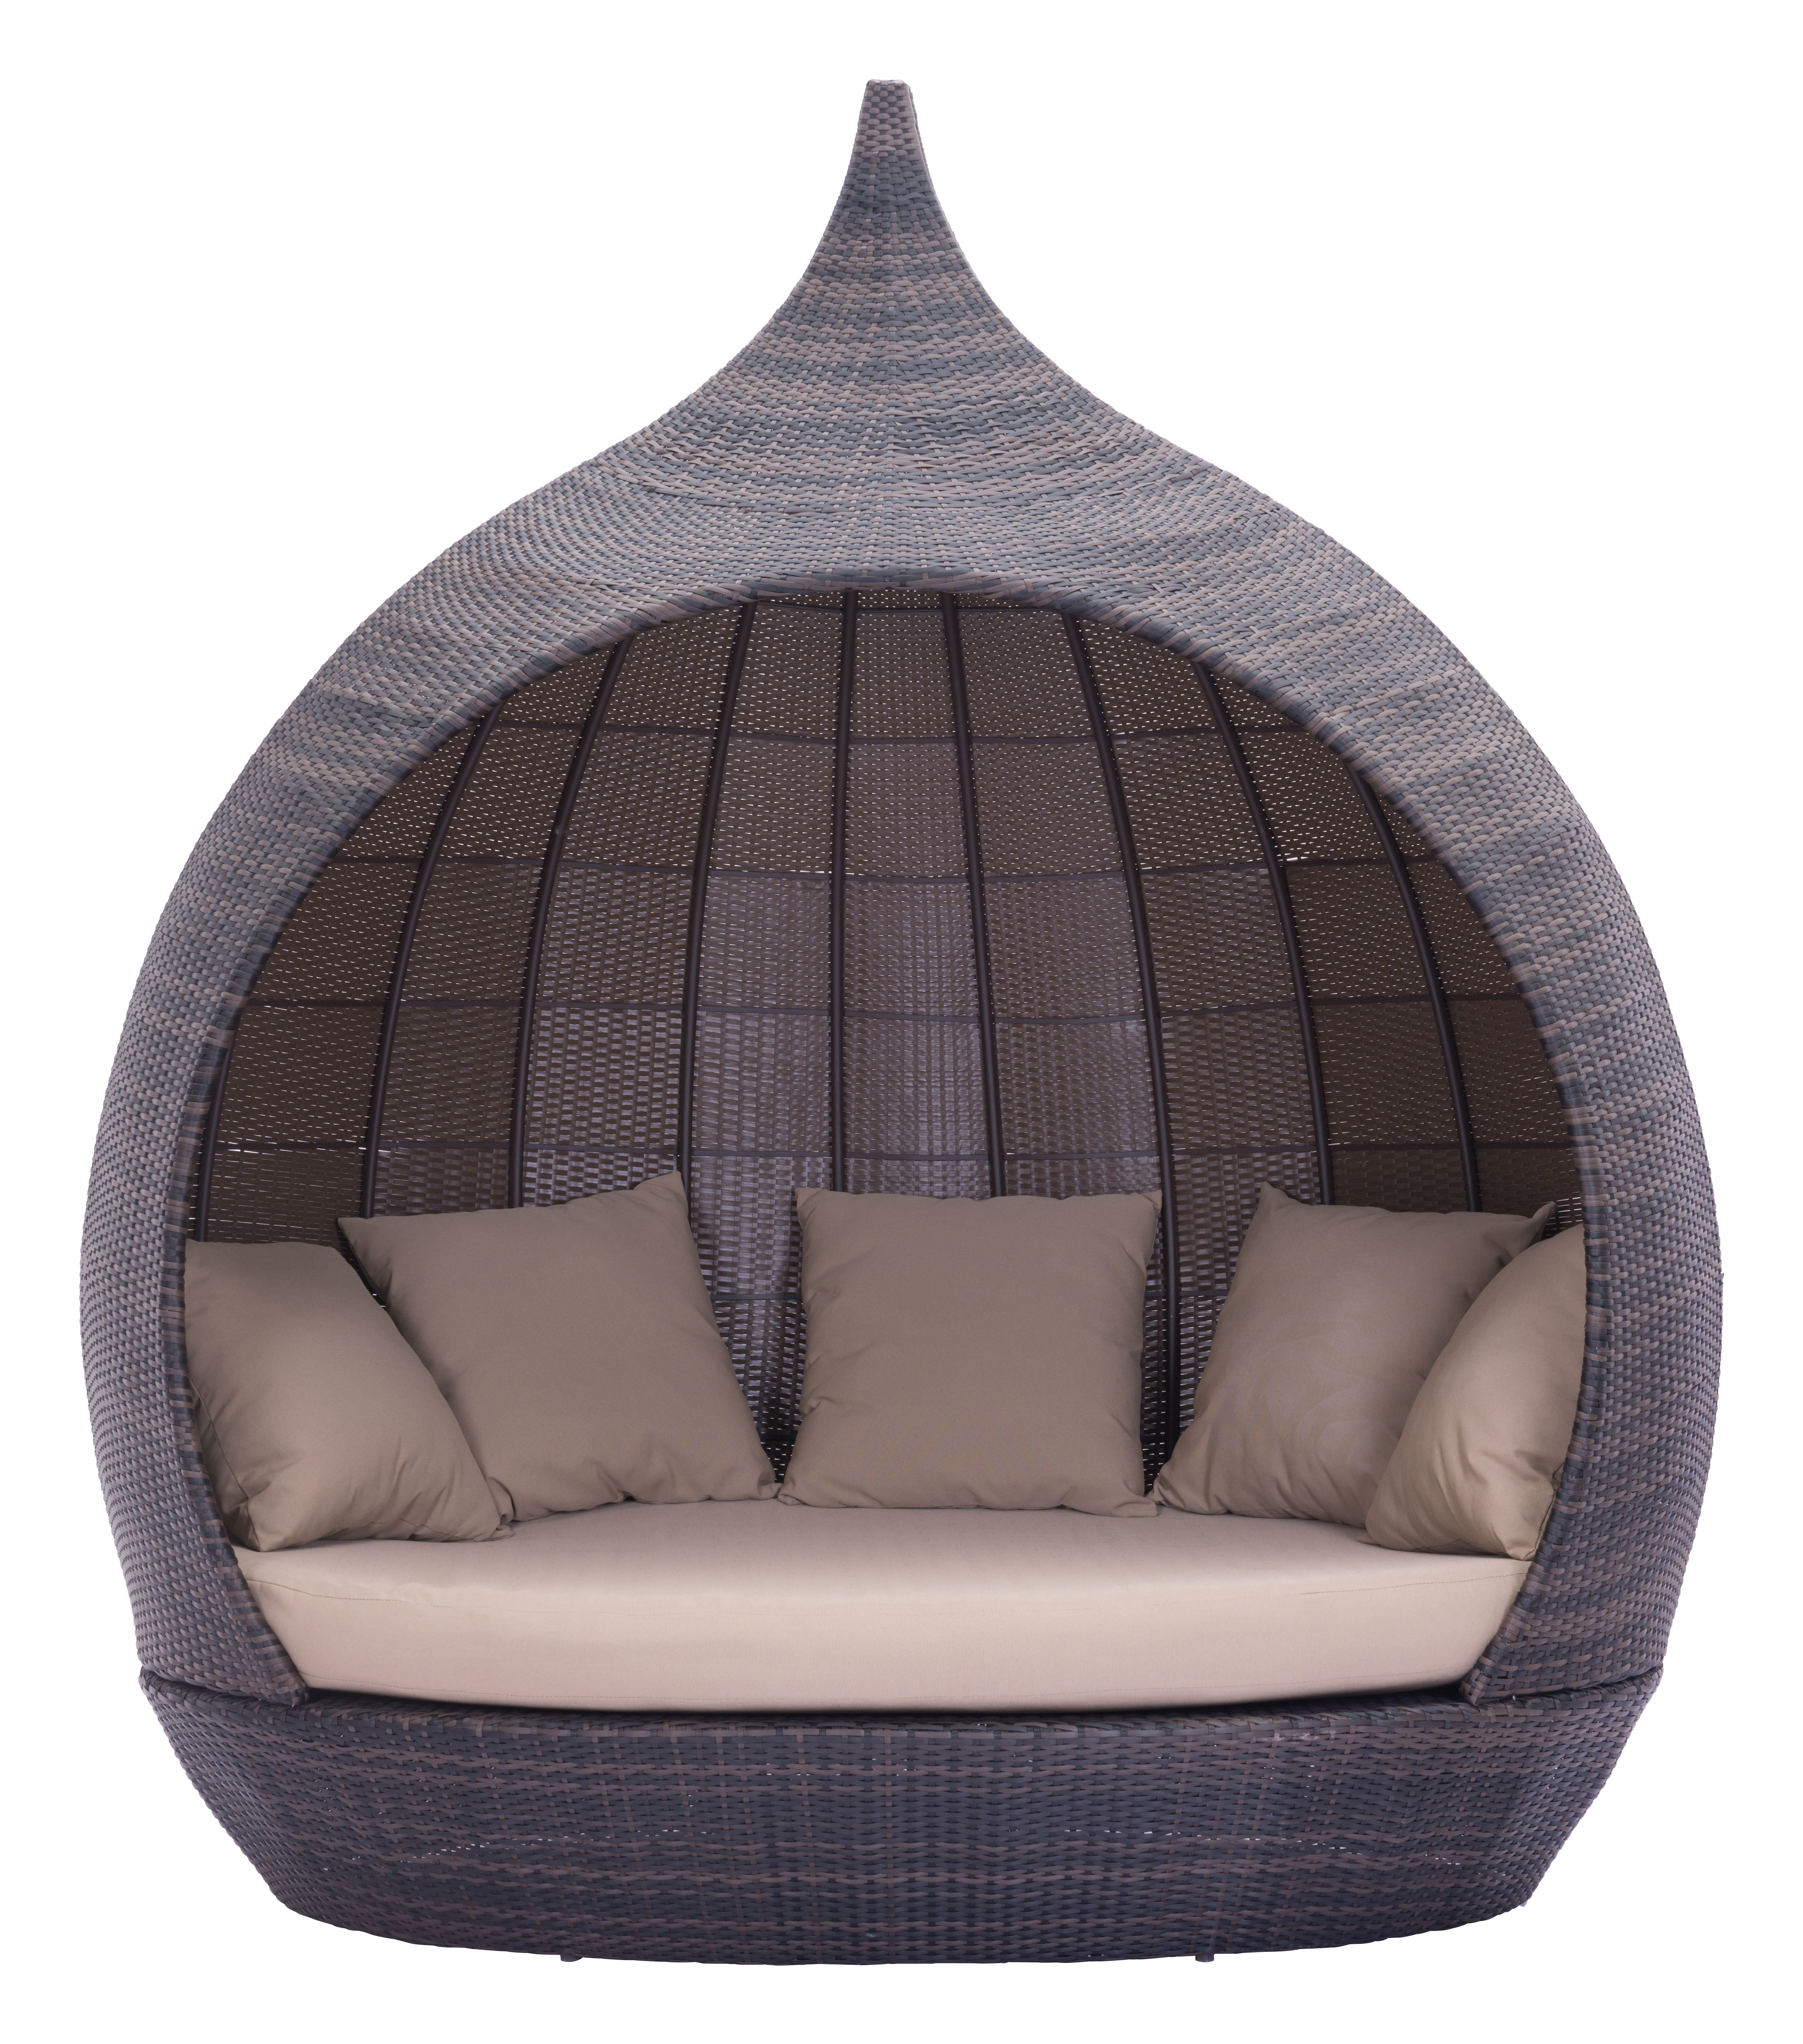 Trendy Gilbreath Daybeds With Cushions Regarding Hatley Patio Daybed With Cushions (View 18 of 20)